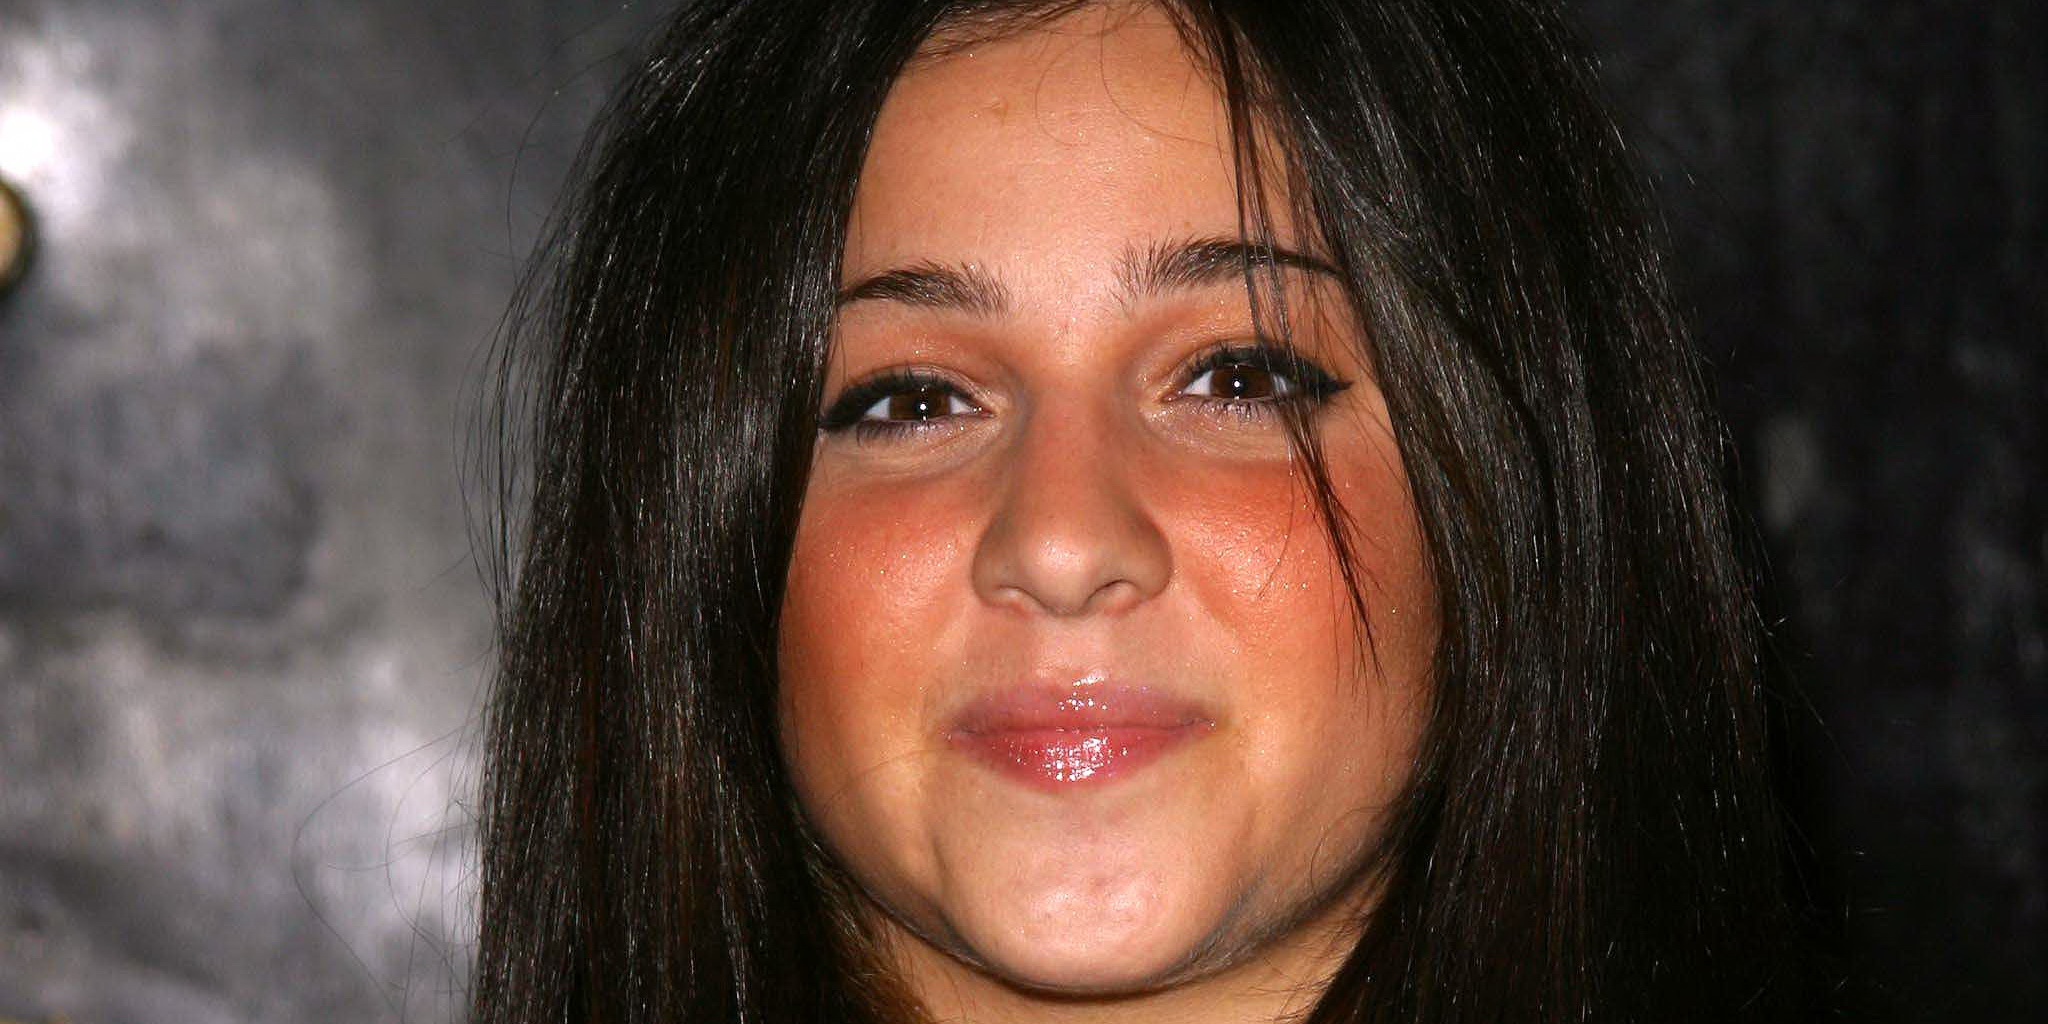 ALISAN PORTER AT THE SPECIAL PREMIERE AND LAUNCH PARTY FOR THE FILM 'SHRINK RAP'. THE MINT, LOS ANGELES, CALIFORNIA. 28 JULY 2003. PICTURES. MICHAEL WILLIAMS/LFI  UWIL. *** Local Caption ***